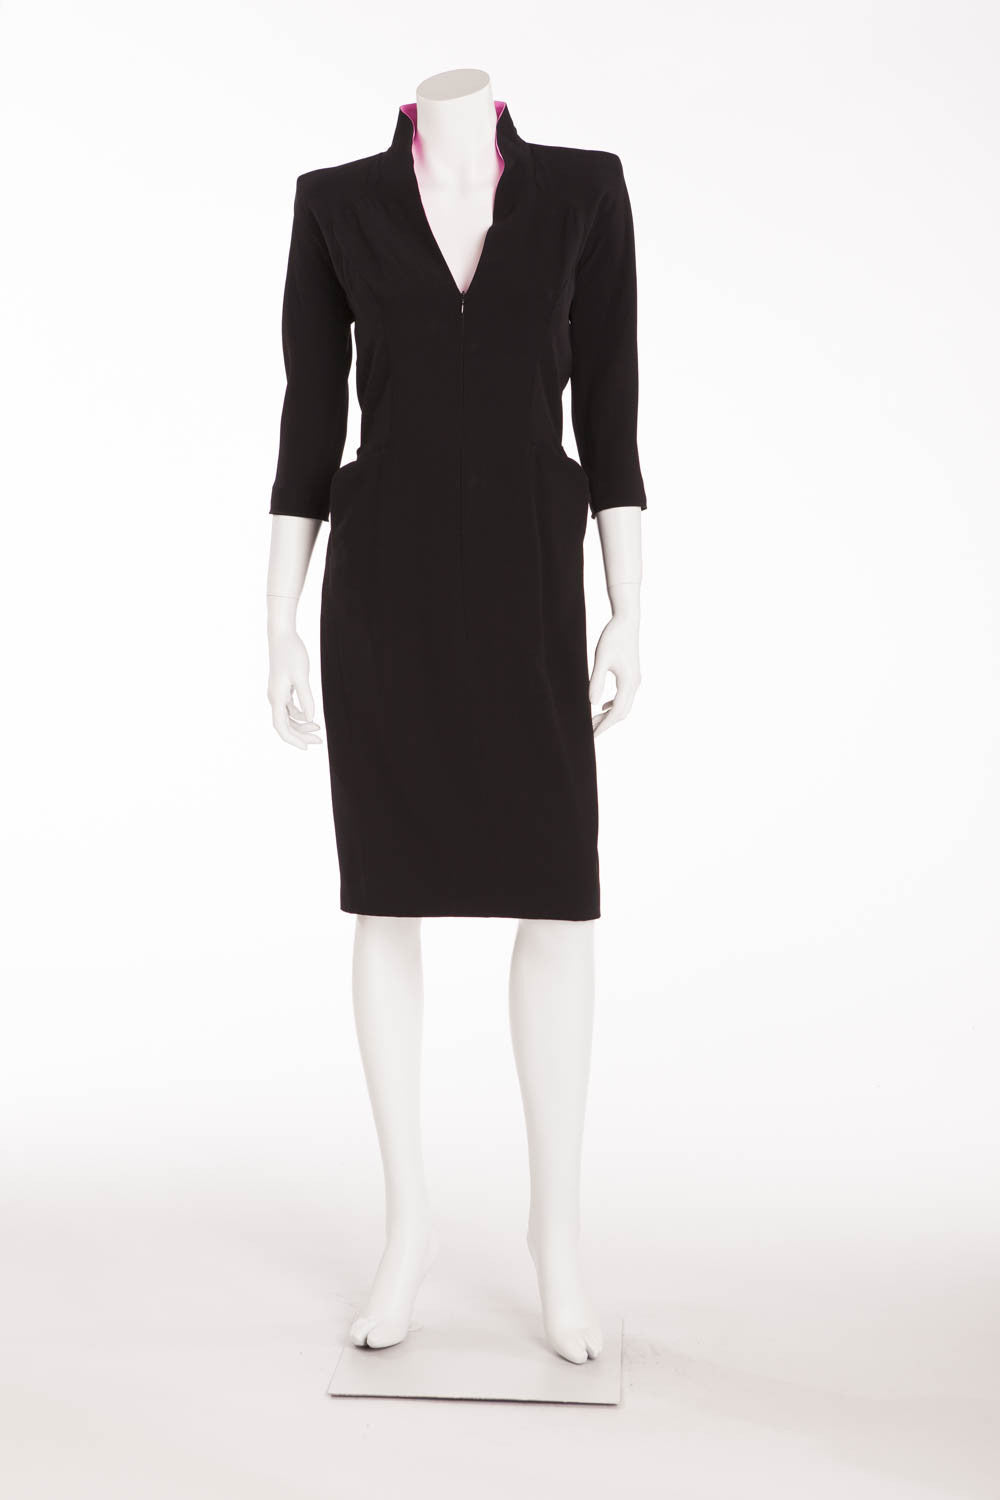 Original Alexander McQueen - Black 3/4 Sleeve V Neck Dress with Pink Trim - IT 40